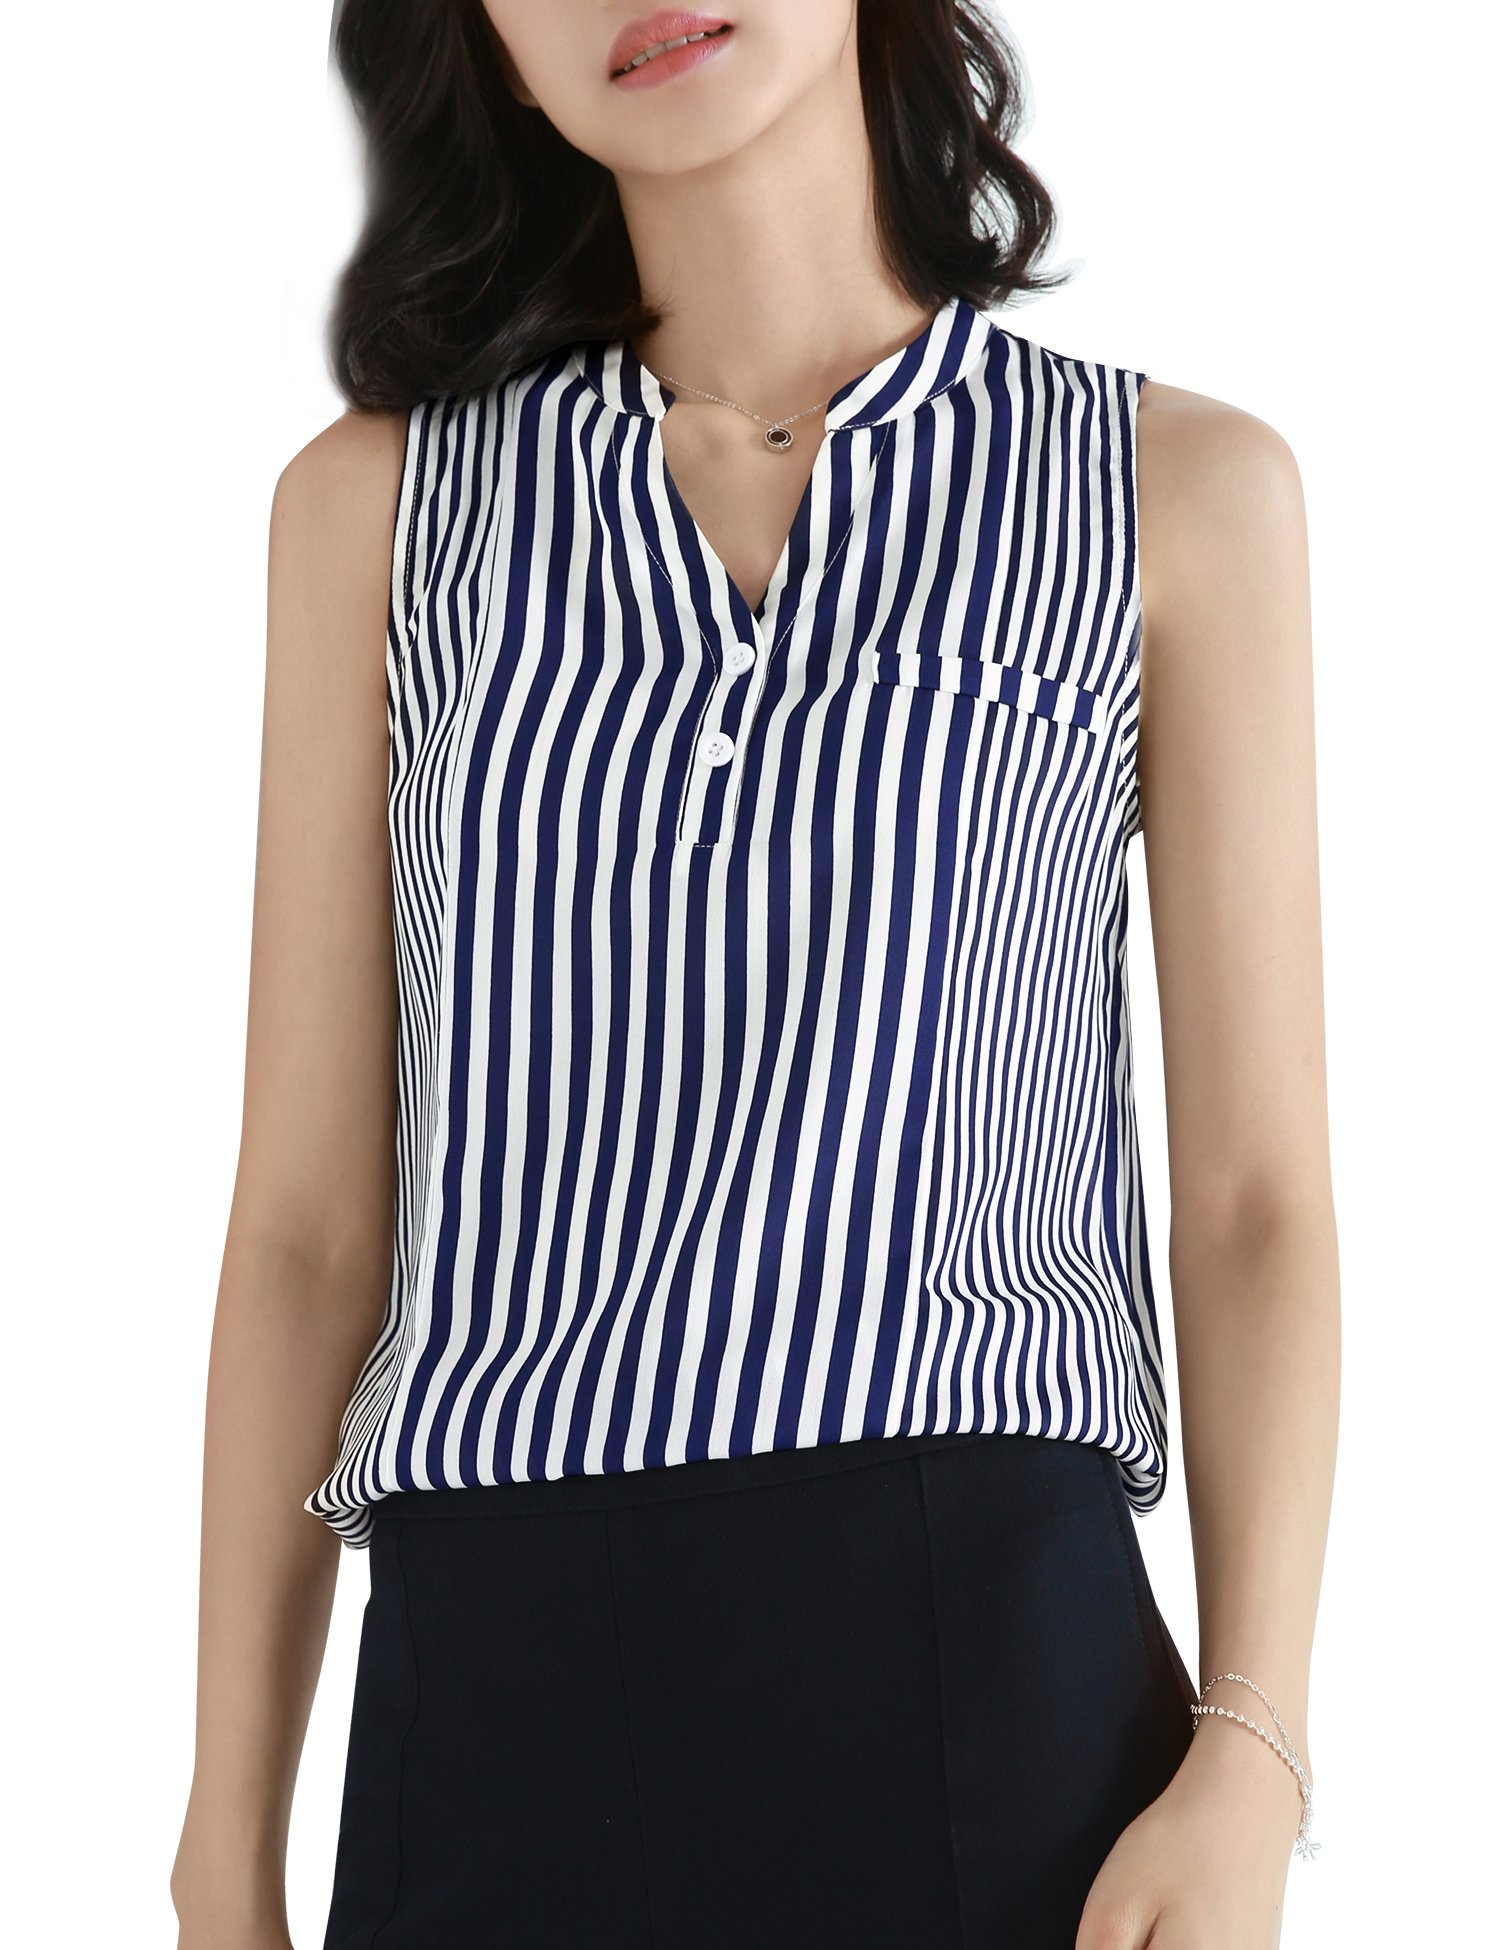 Timeson Chiffon Tank Tops, Women's Sleeveless Sheer Blouse Casual Lightweight Business Work Shirt V Neck Casual Dressy Tunic for Summer Button Down Blouses for Work Blue White Large